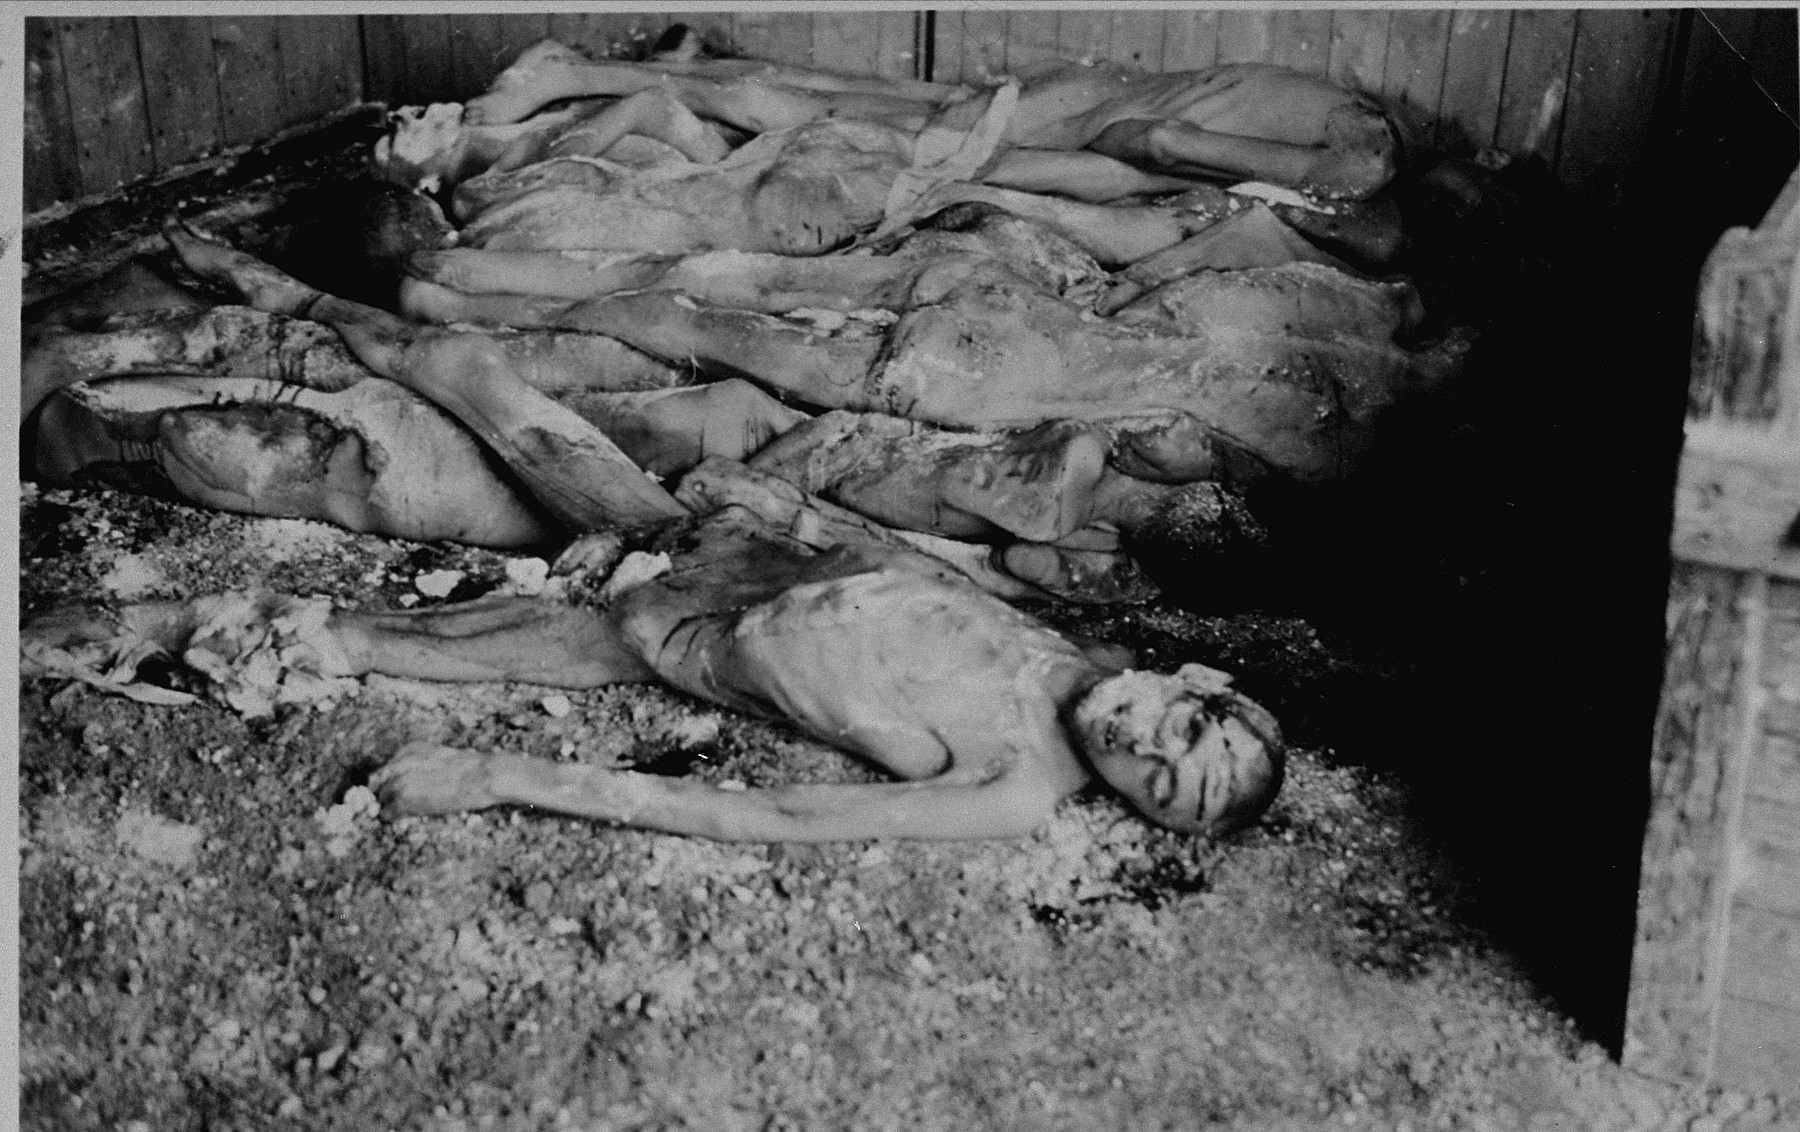 The corpses of prisoners stacked in a shed.